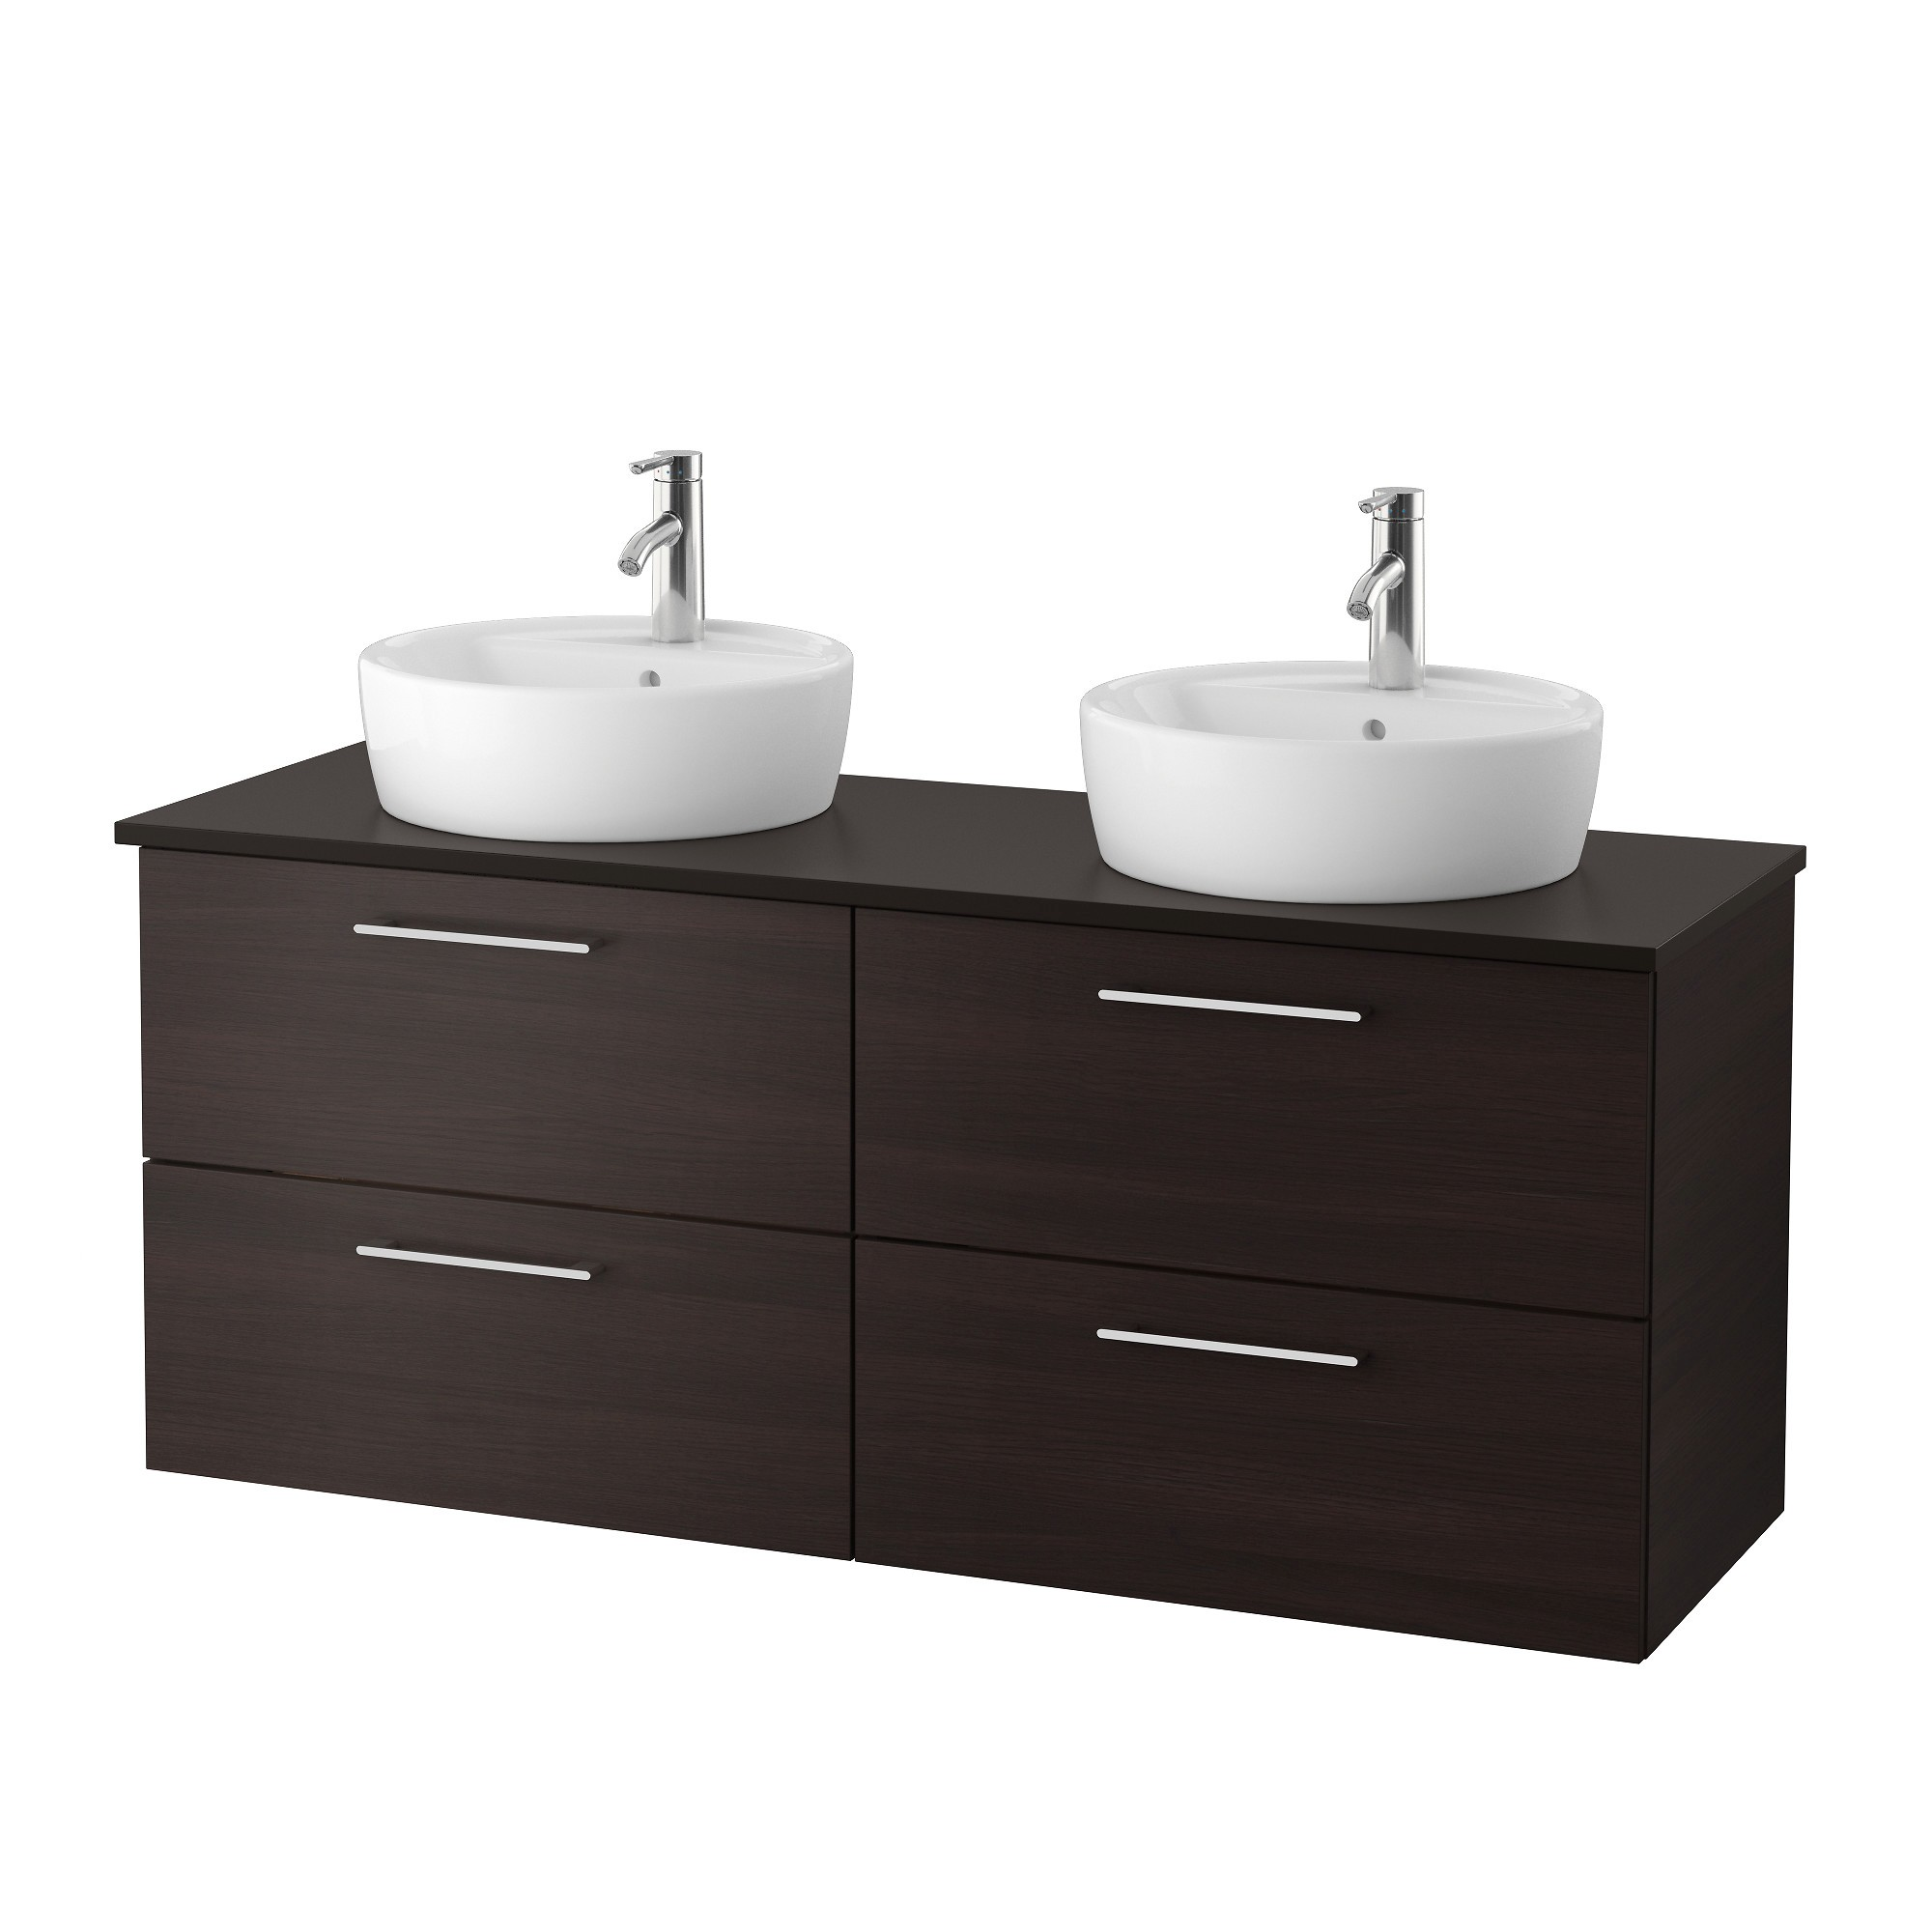 30 Inch Bathroom Vanity Ikea Amazing Bathroom Vanities Countertops Ikea Plan